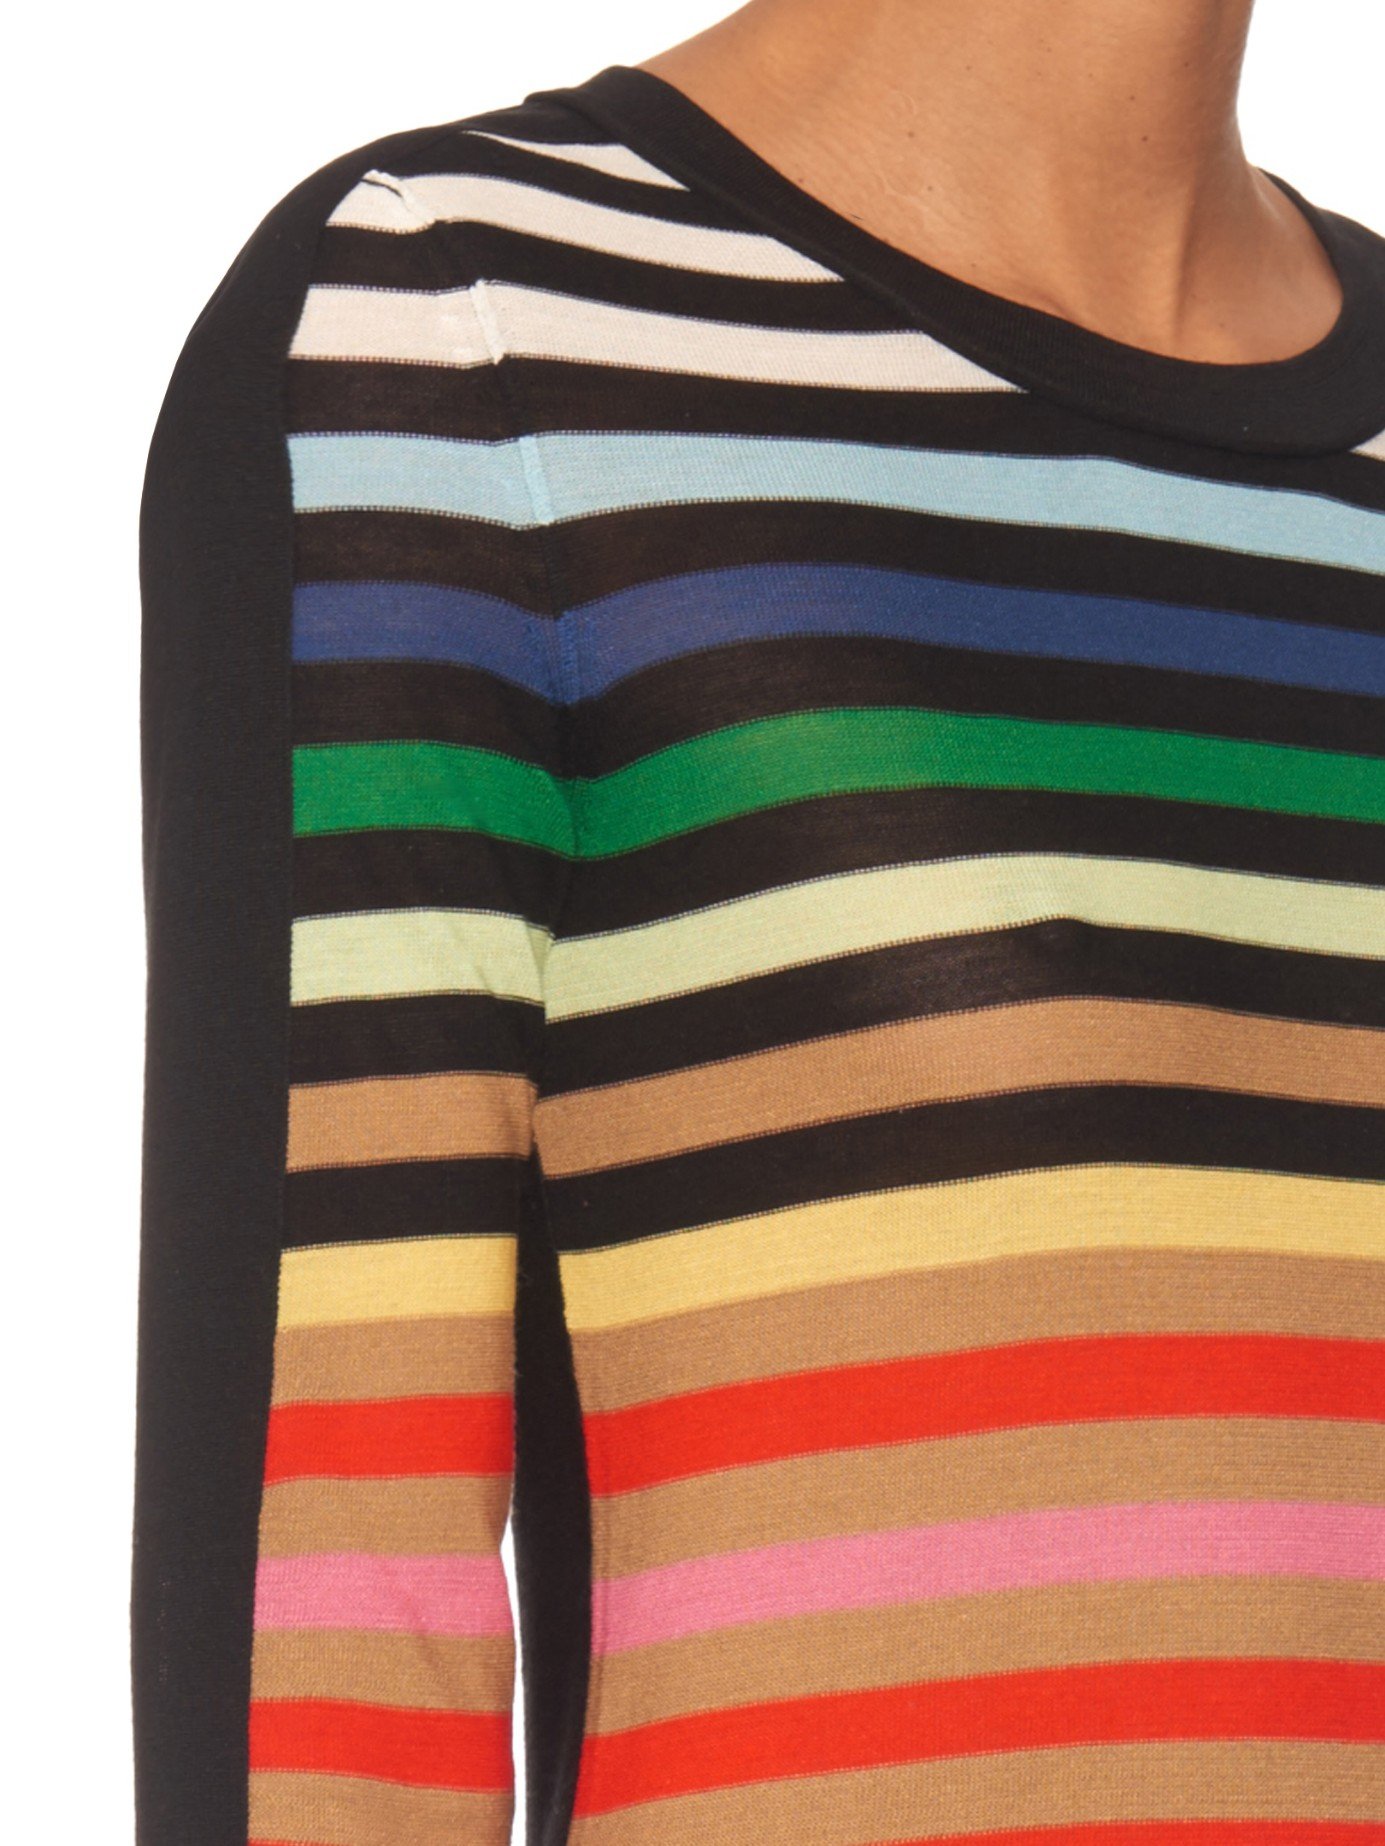 bbbbdbf666 Sonia Rykiel Striped Silk-and Cotton-blend Sweater - Lyst